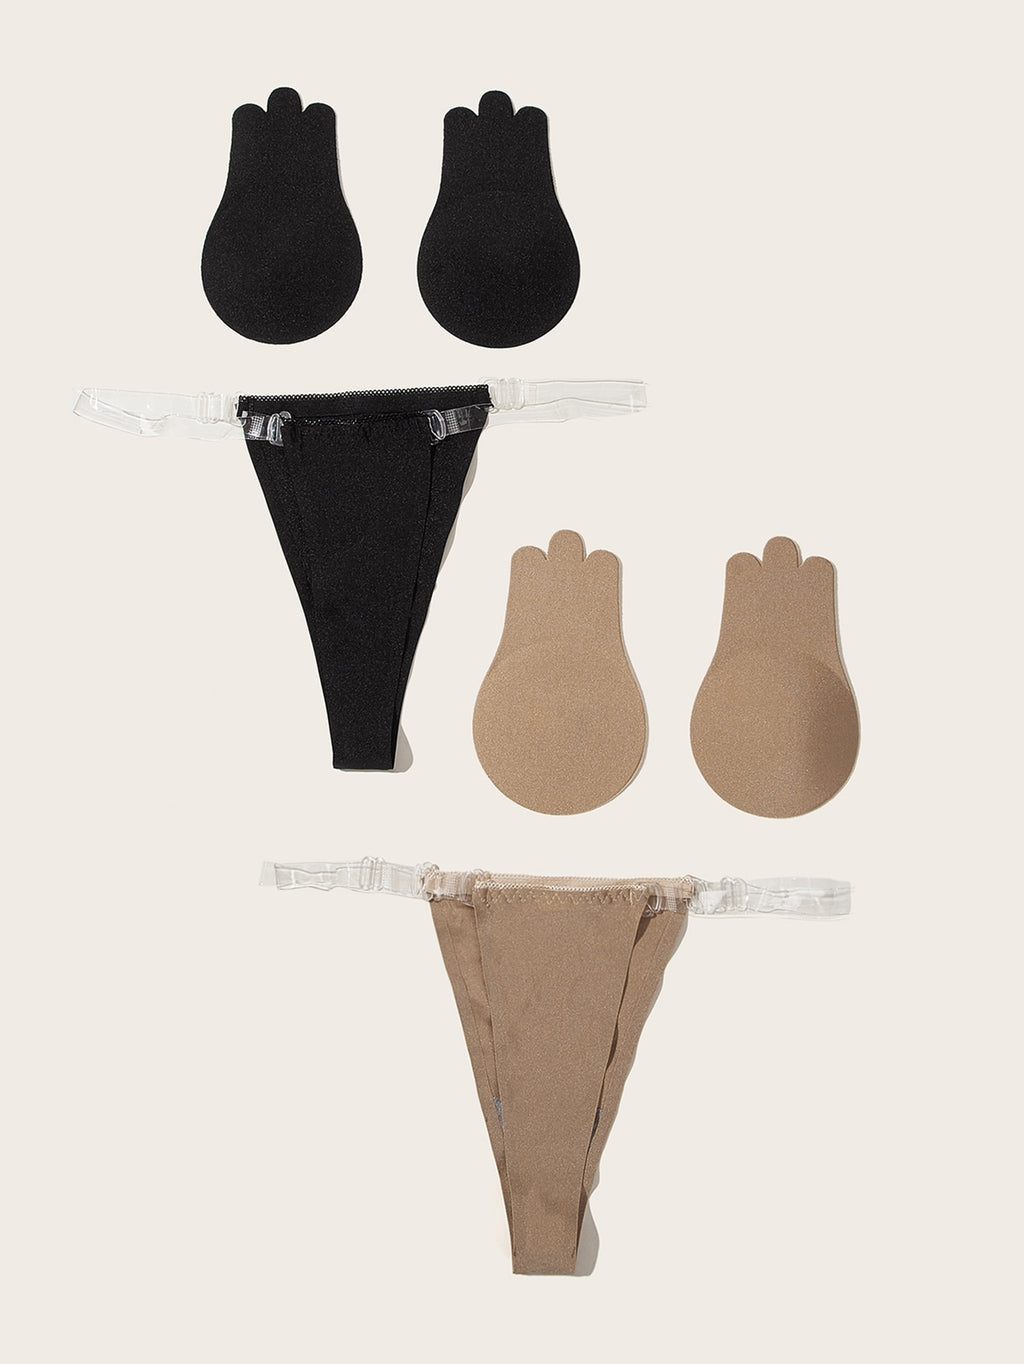 2Pcs Self Adhesive Bra With Thong Lingerie Set (4345158107201)